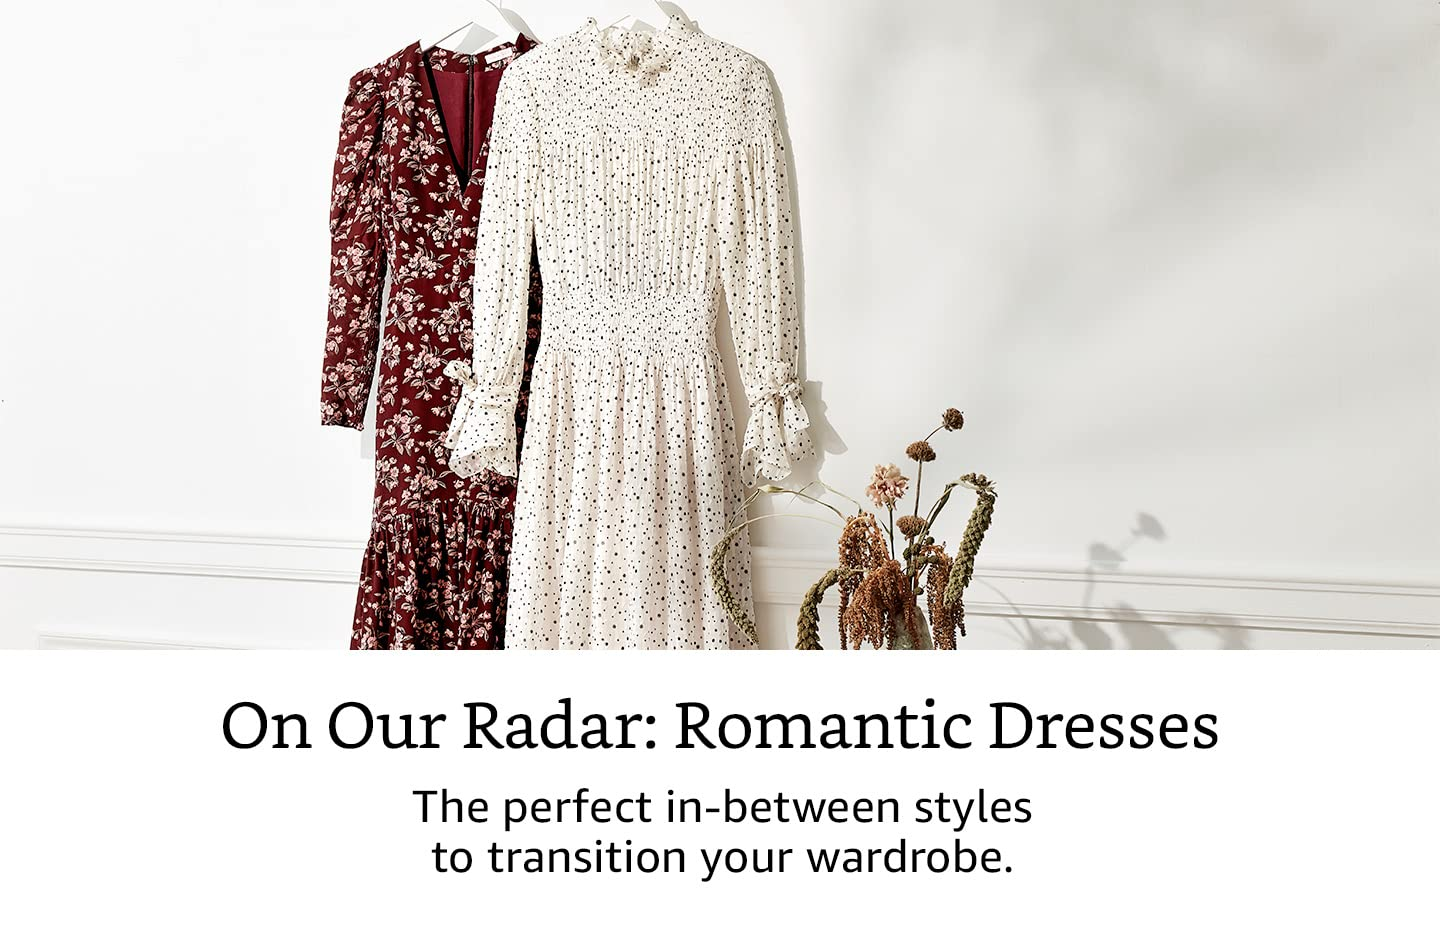 On Our Radar: Romantic Dresses